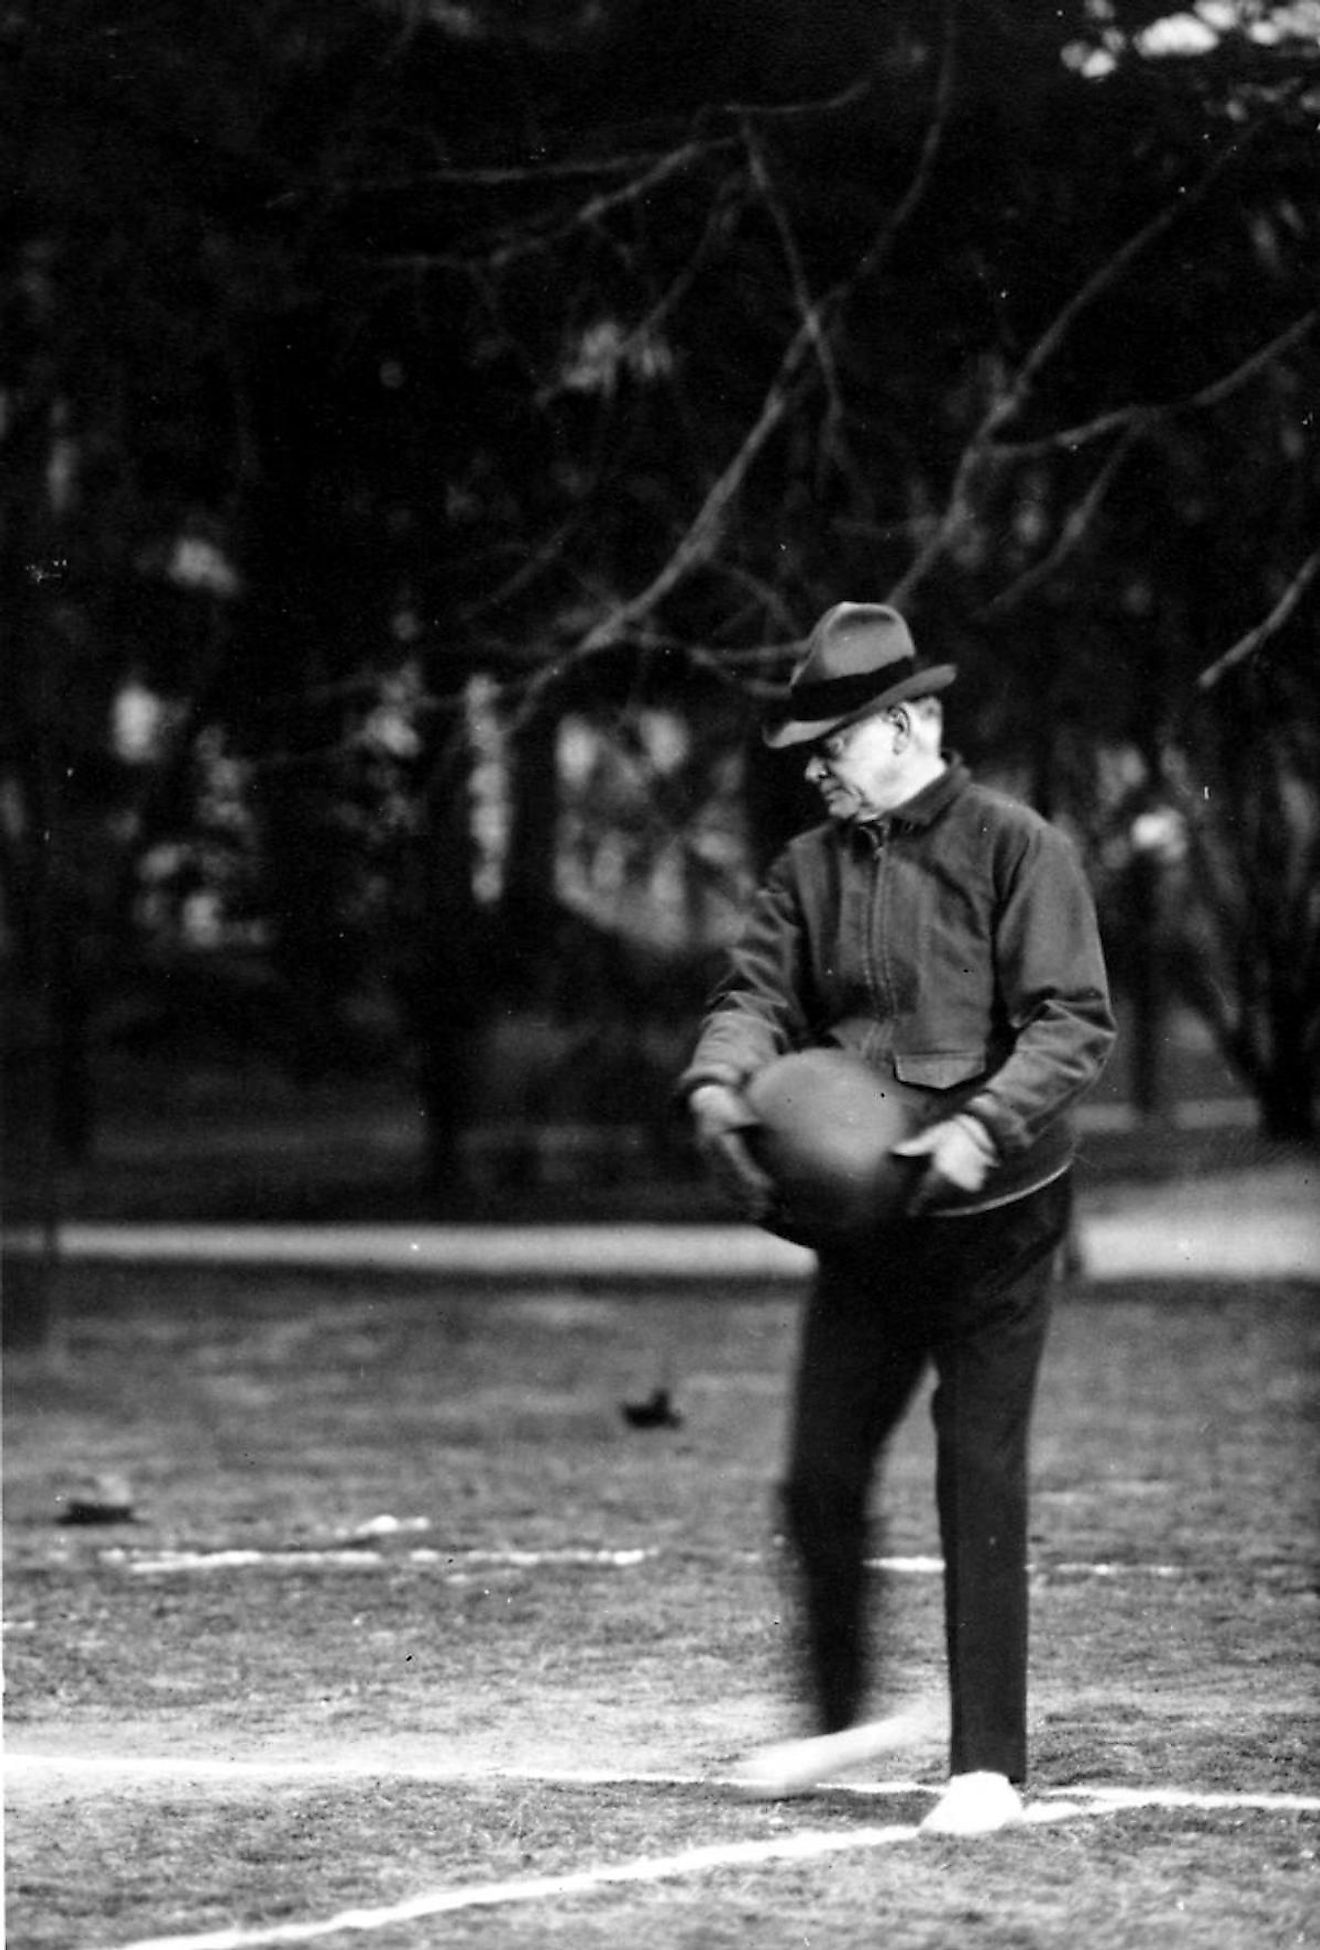 President Hoover playing Hoover-Ball on the White House lawn. Image credit: hoover.archives.gov